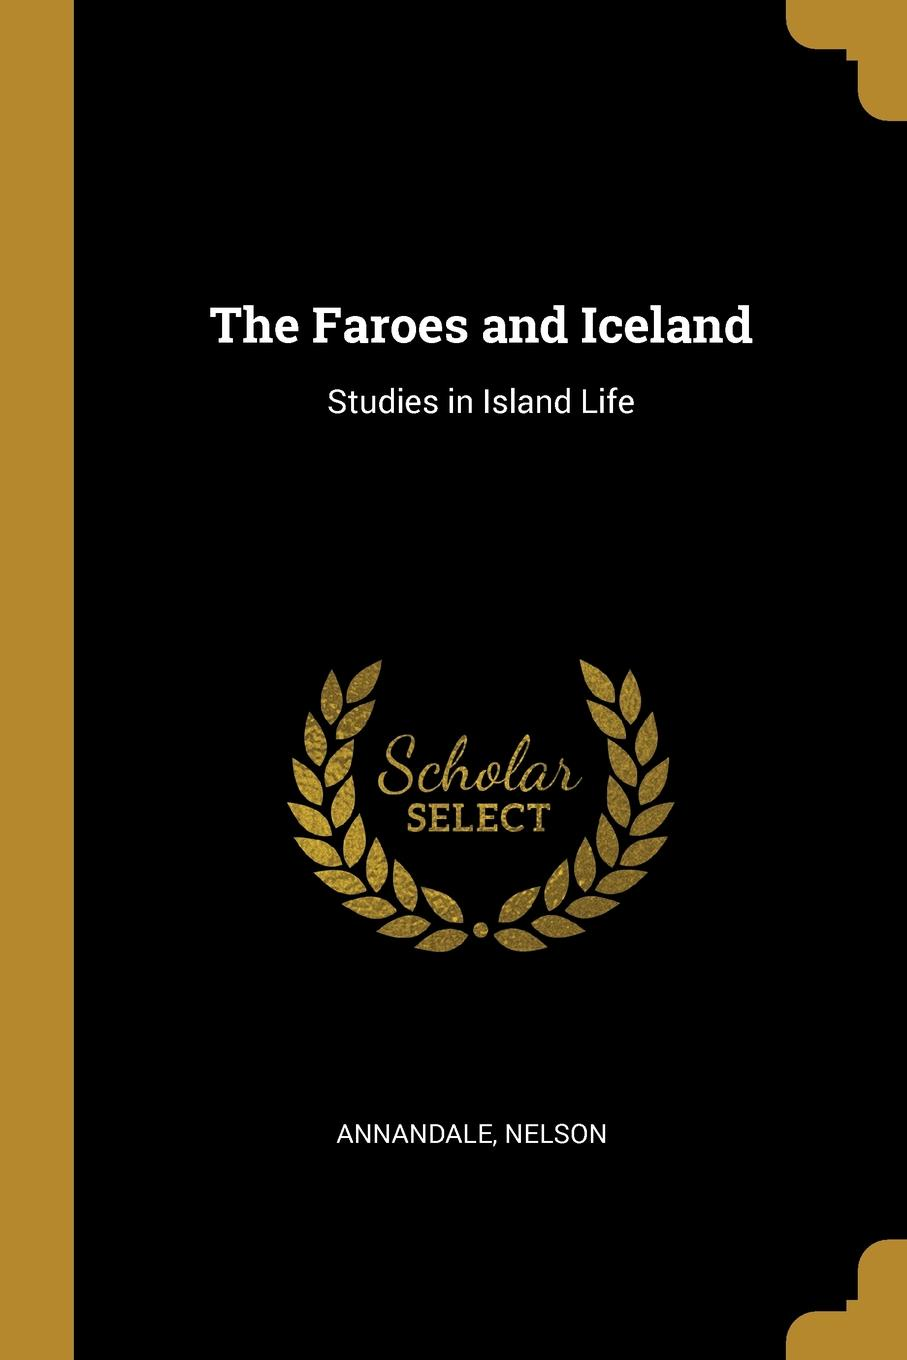 Annandale Nelson. The Faroes and Iceland. Studies in Island Life